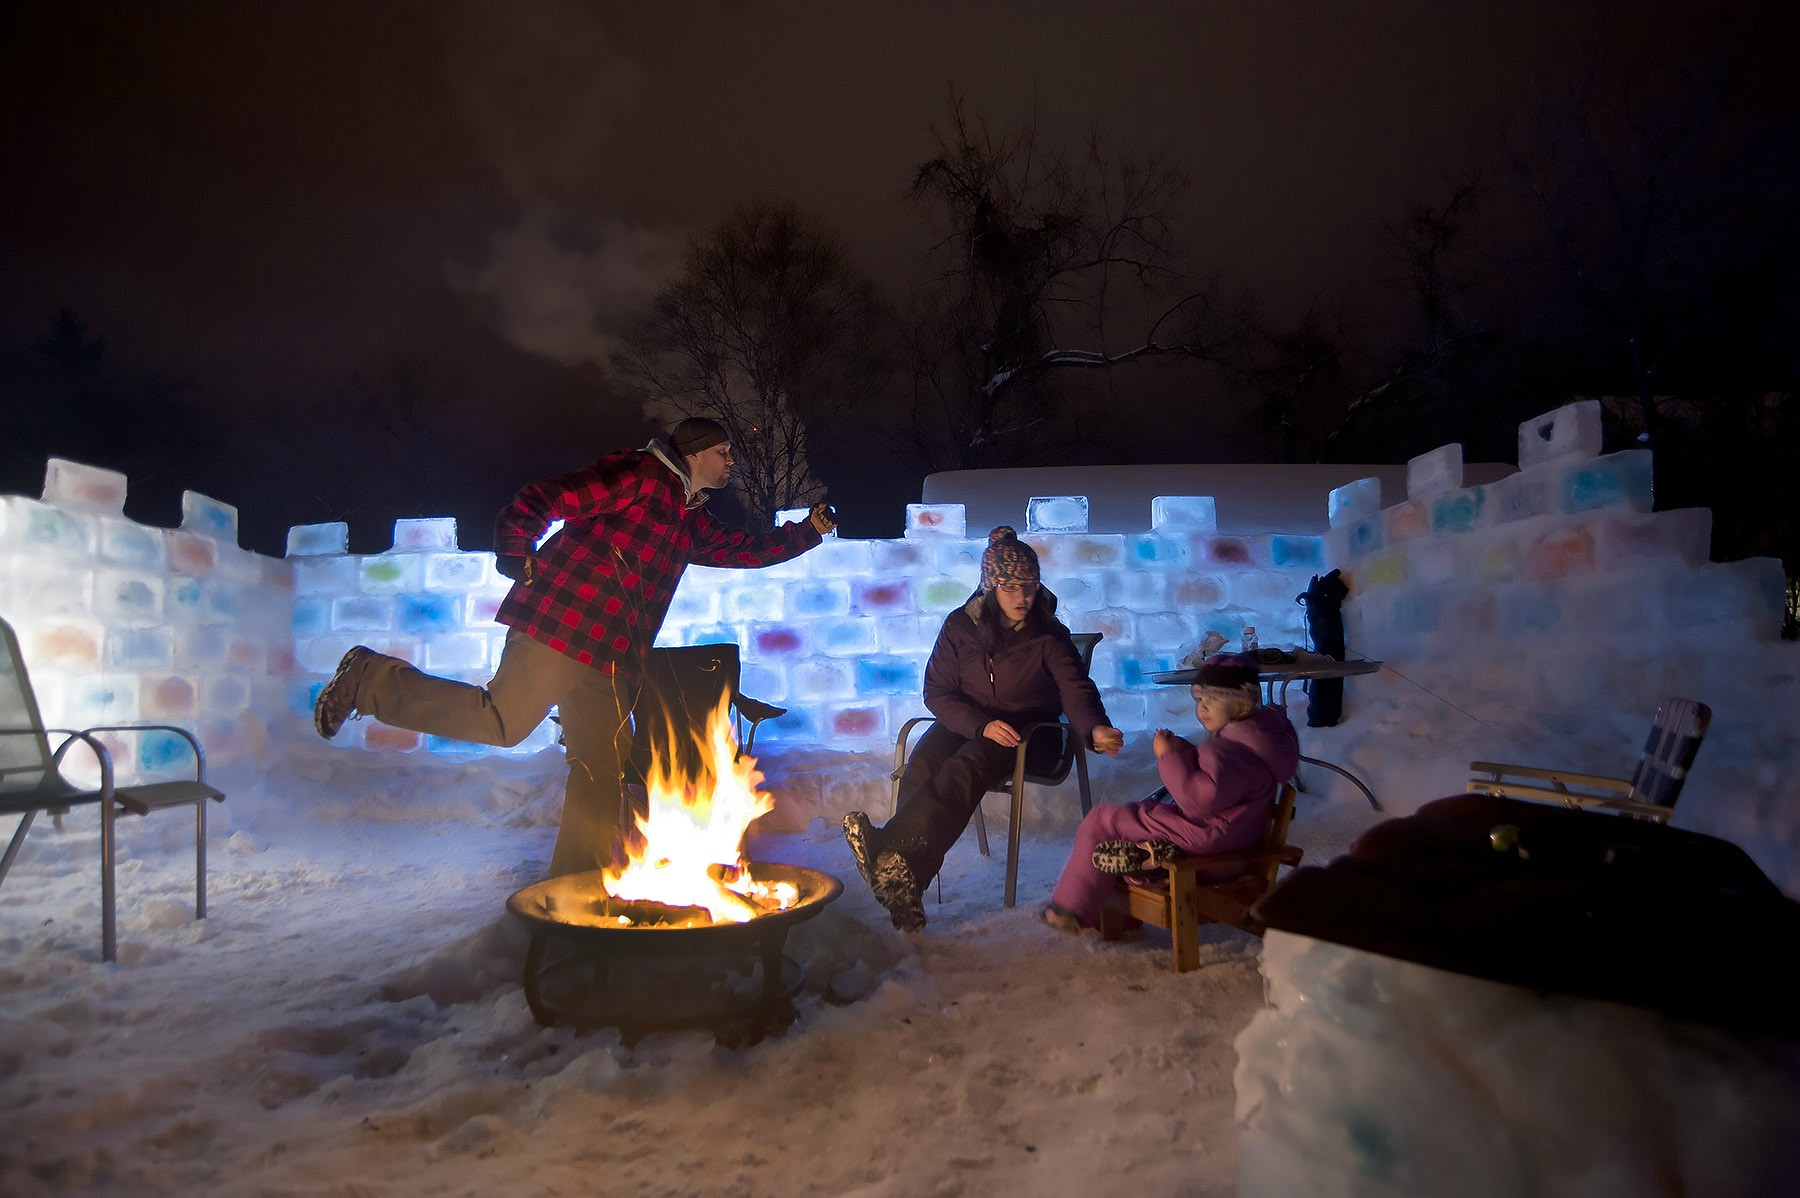 Some dude has taken advantage of this winter's cold weather to build himself a giant, multi-colored ice fort.